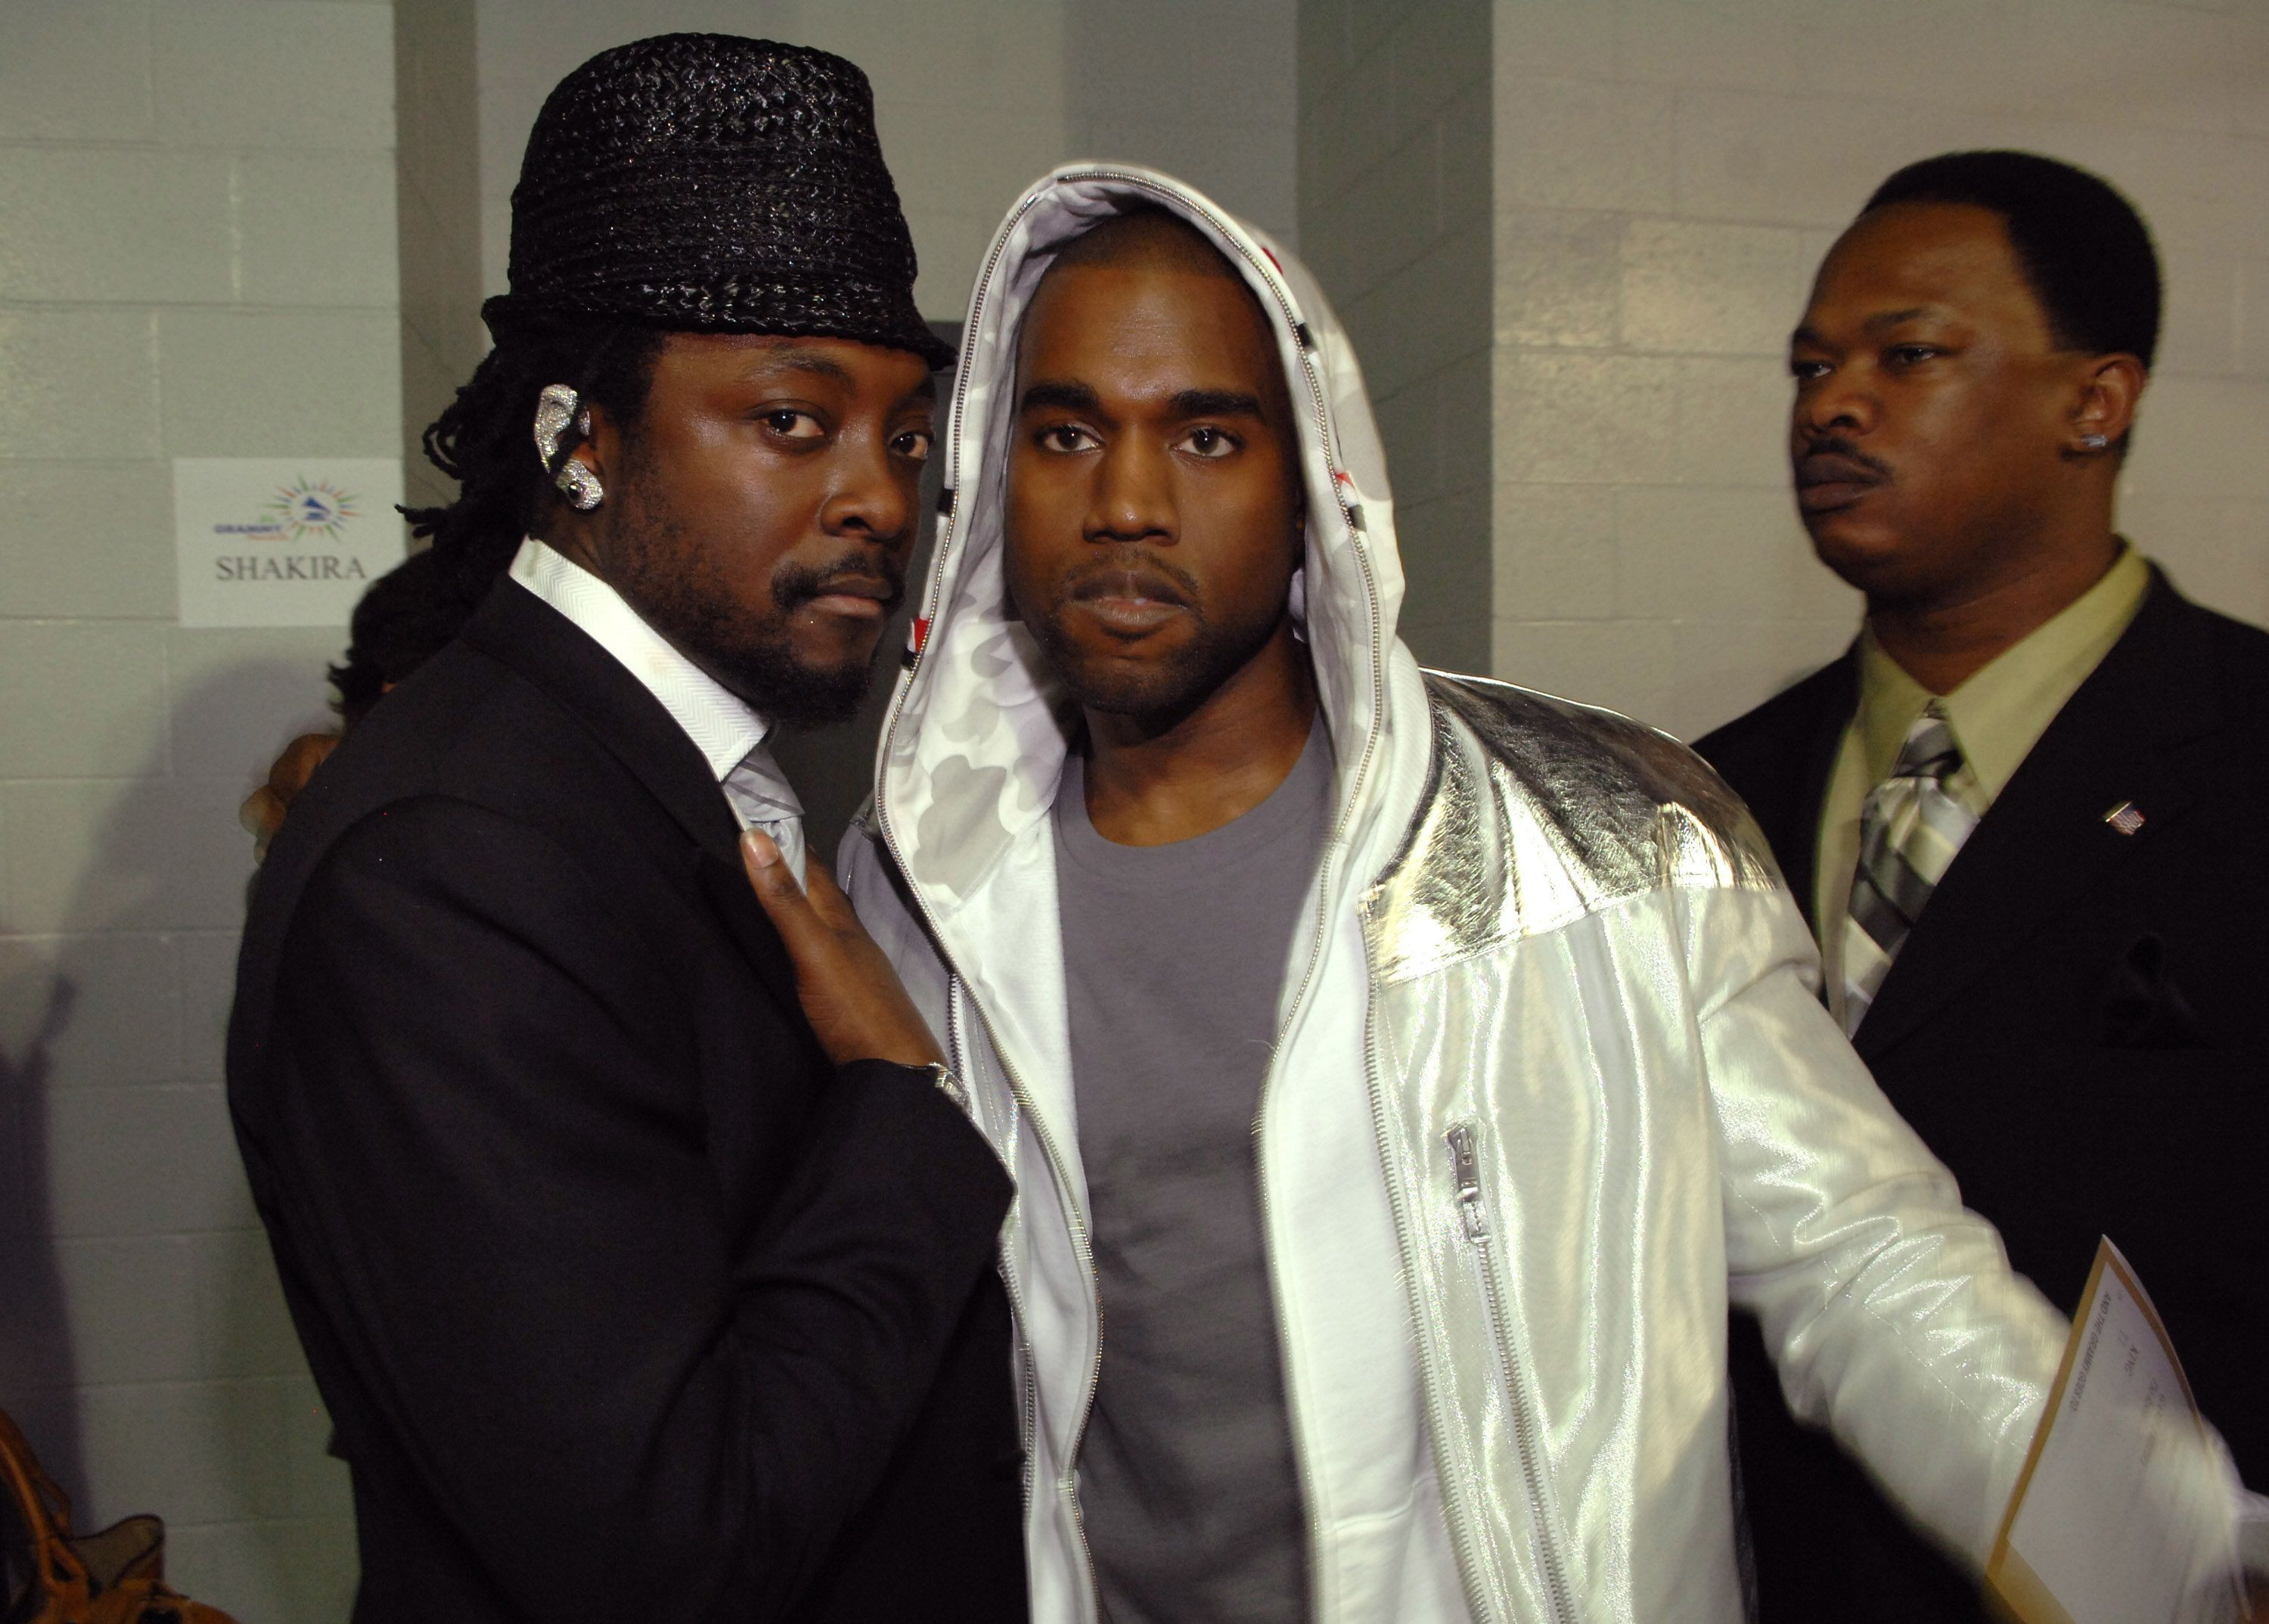 will.i.am and Kanye